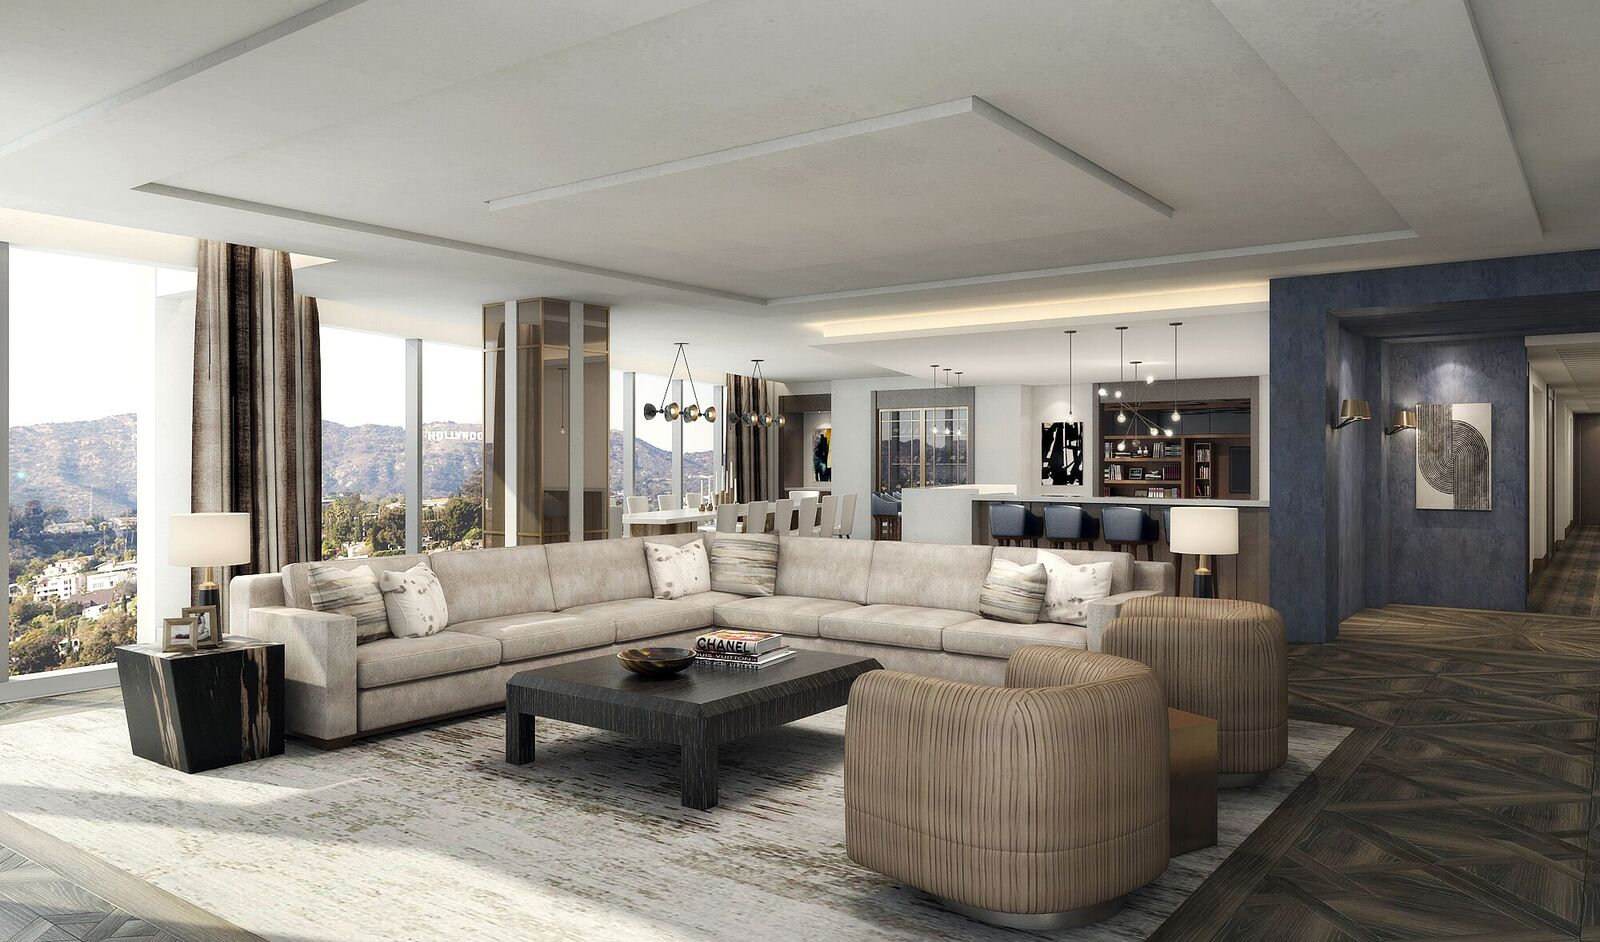 Above the penthouses an exclusive collection at the top of the